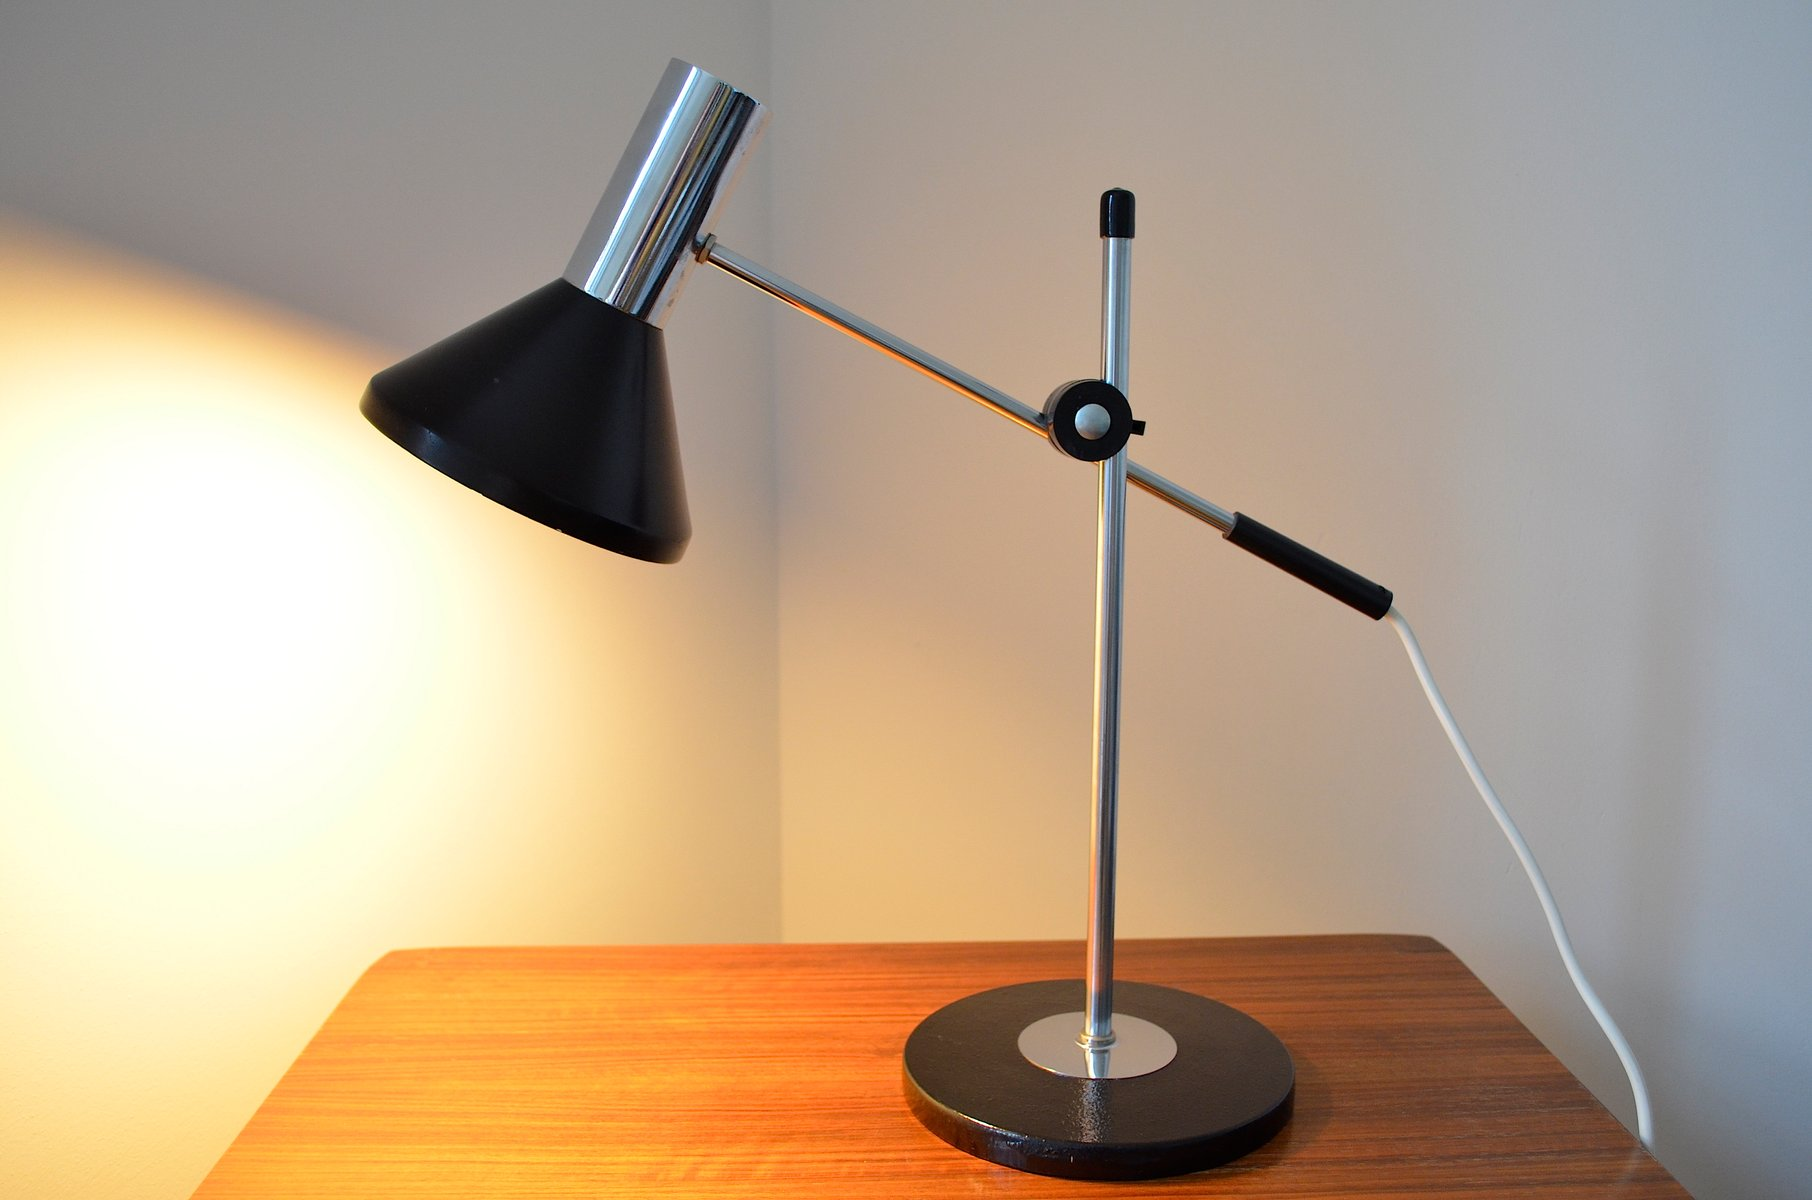 lampe de bureau vintage ajustable allemagne 1960s en vente sur pamono. Black Bedroom Furniture Sets. Home Design Ideas